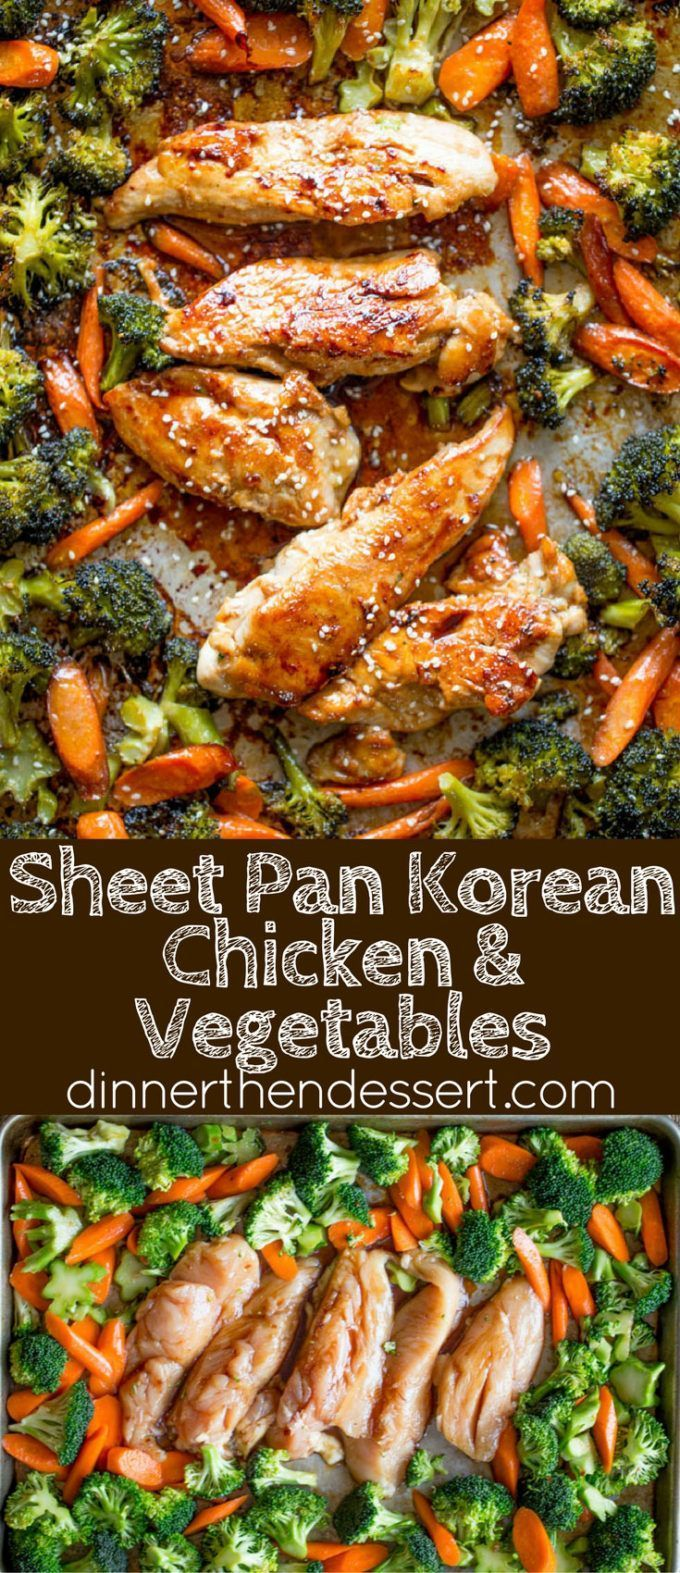 Sheet Pan Korean Chicken and Vegetables are a delicious and easy weeknight meal that cooks in one pan and makes crispy tender vegetables and moist sweet and garlicky chicken.